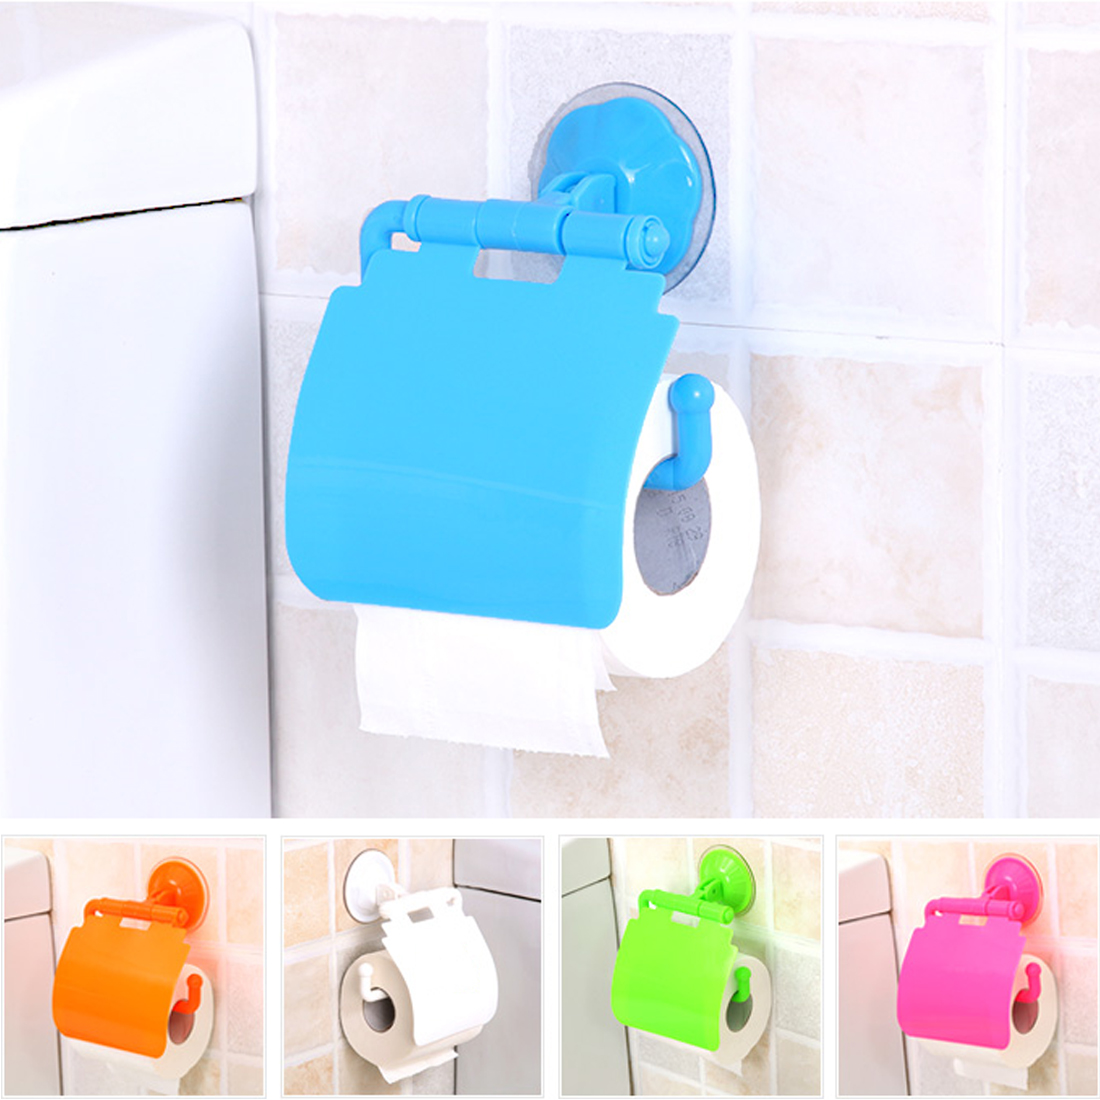 New Home Decoration Plastic Toilet Bathroom Kitchen Wall Mounted Roll Paper Holder Waterproof